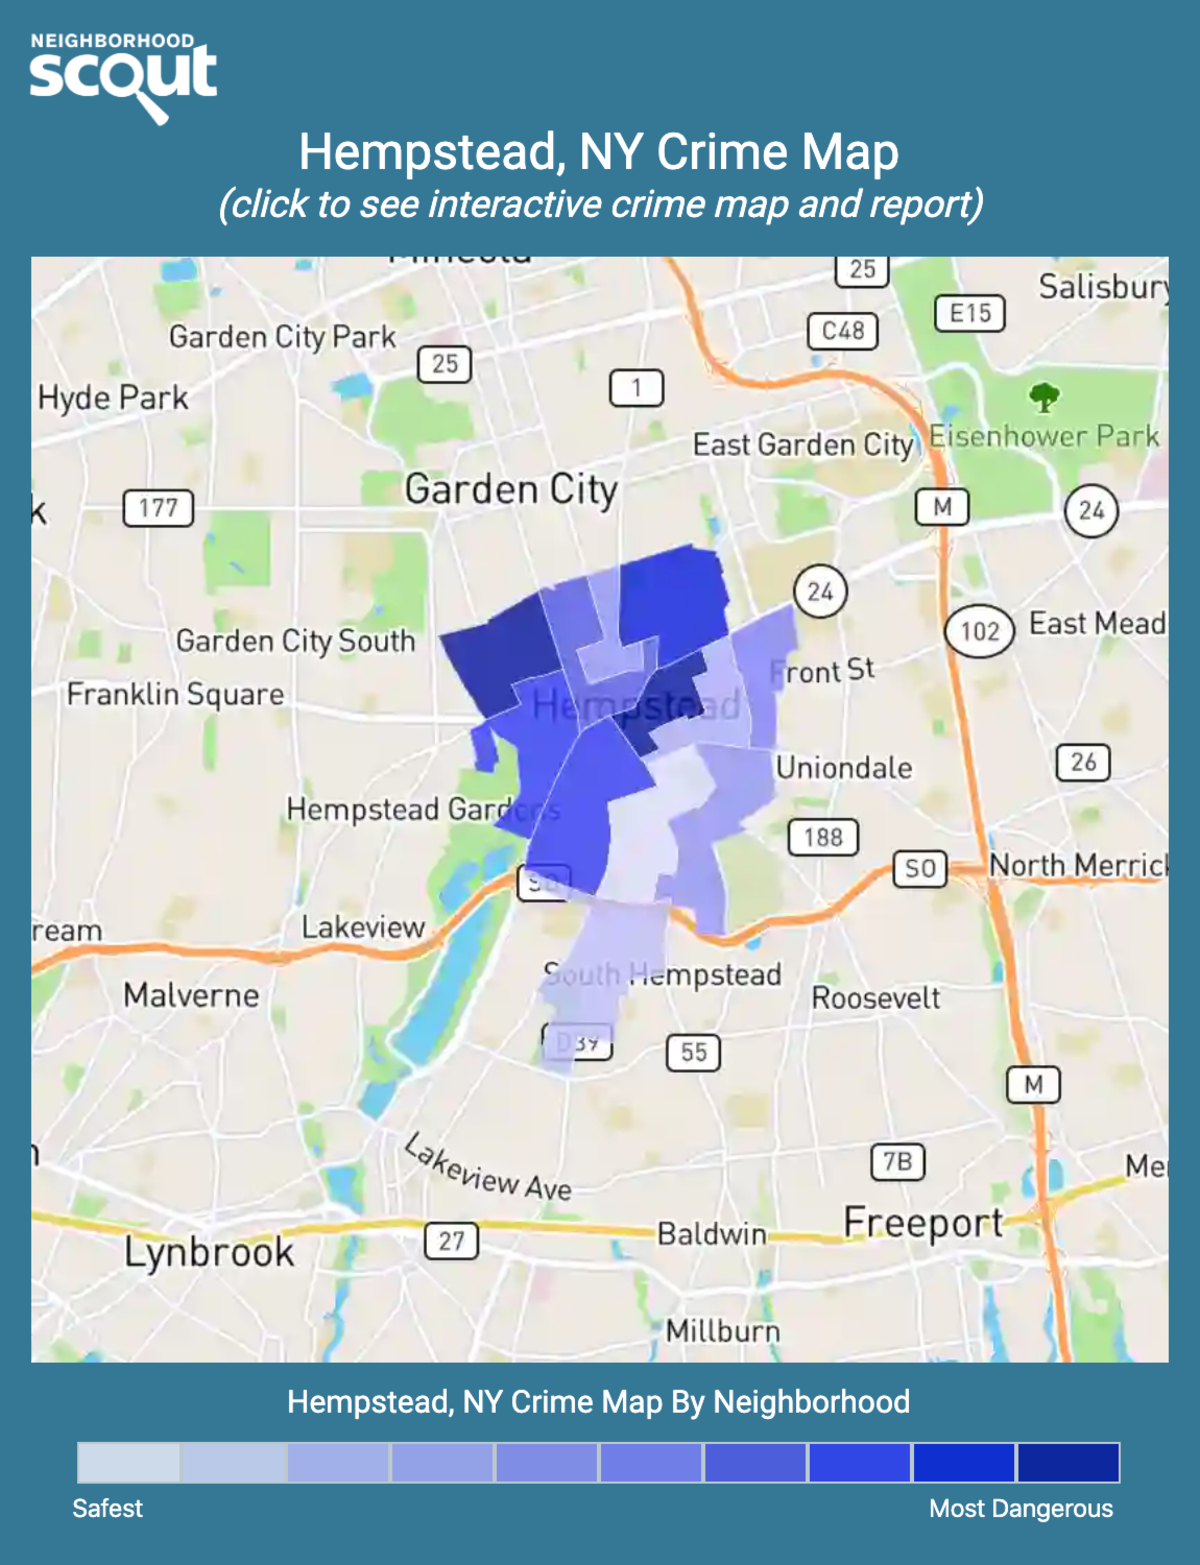 Hempstead, New York crime map